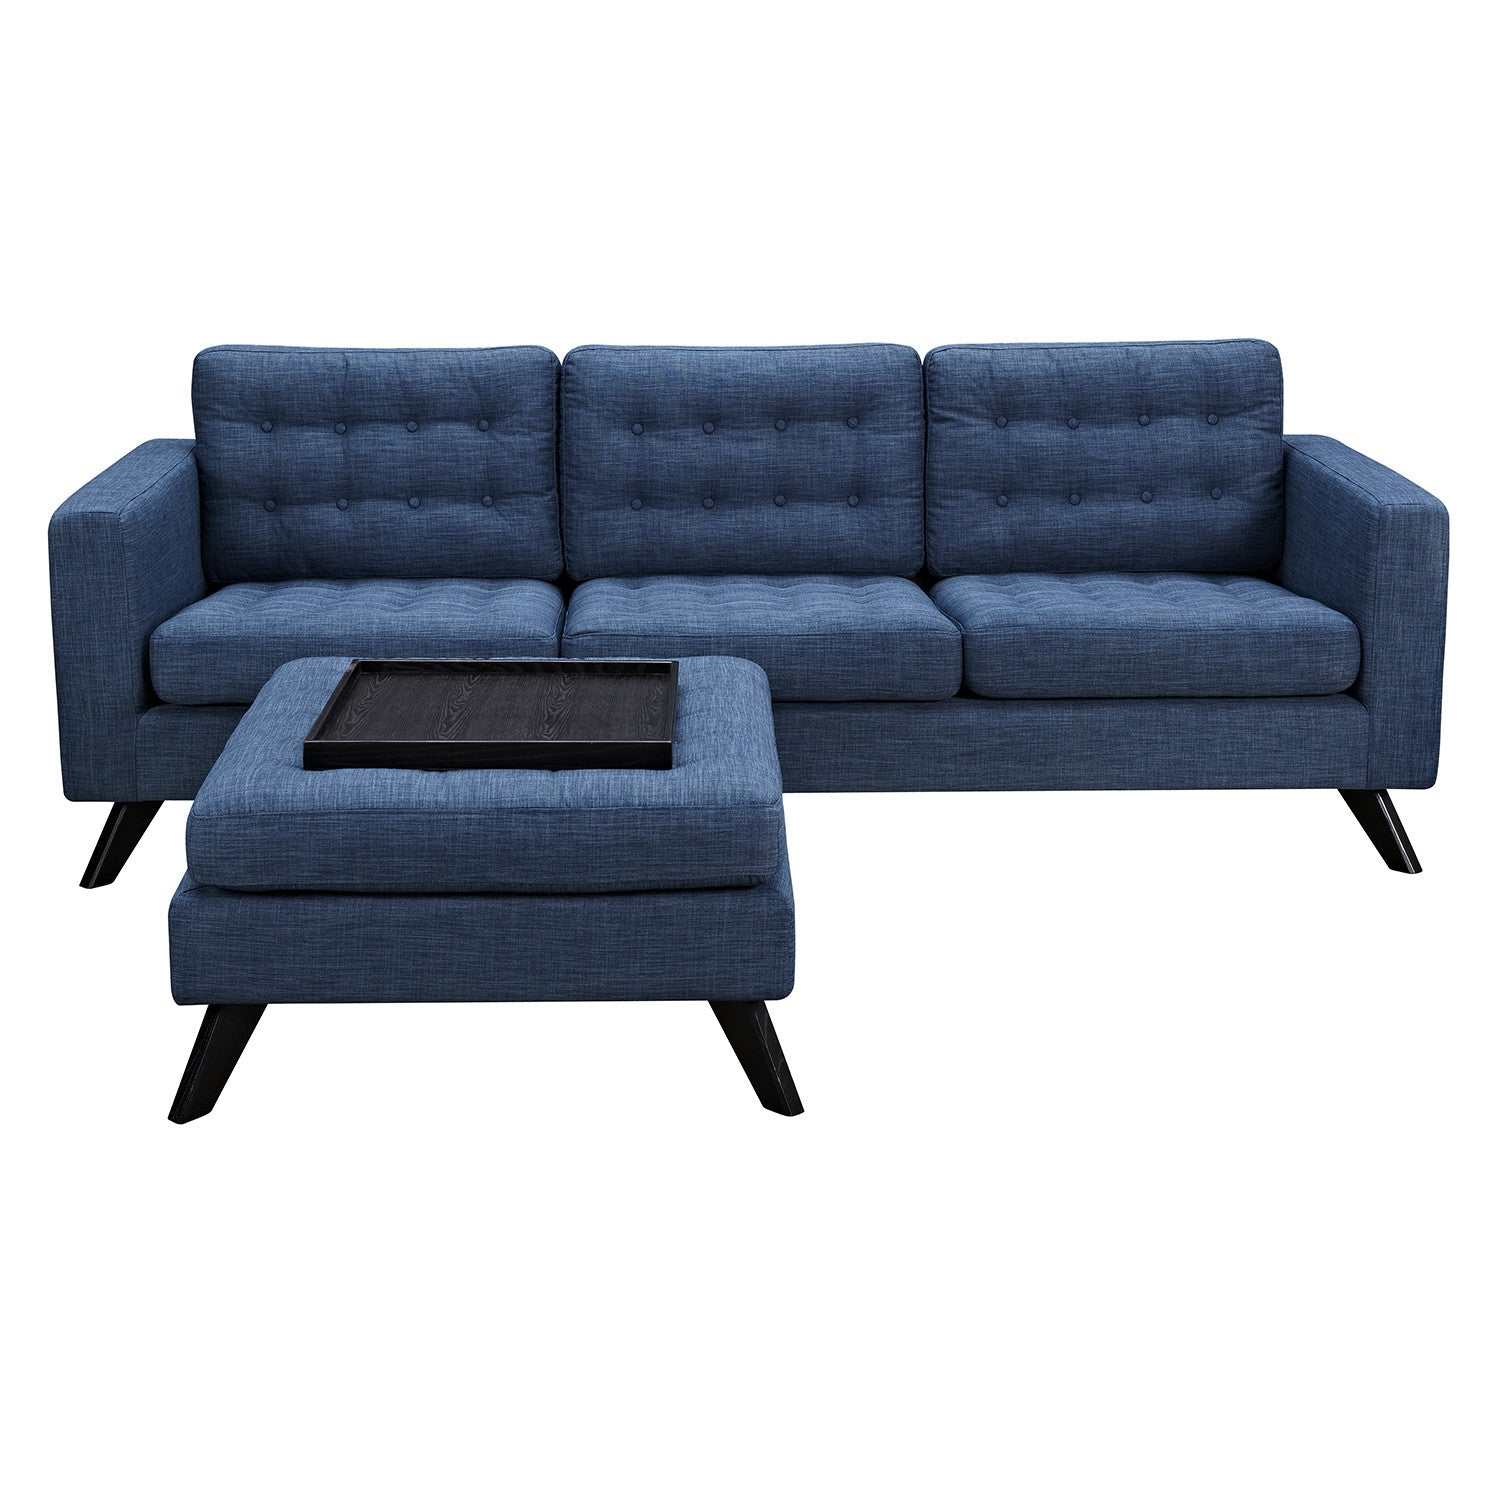 Miraculous Stone Blue Mina Sofa Set Black Nyekoncept Gamerscity Chair Design For Home Gamerscityorg